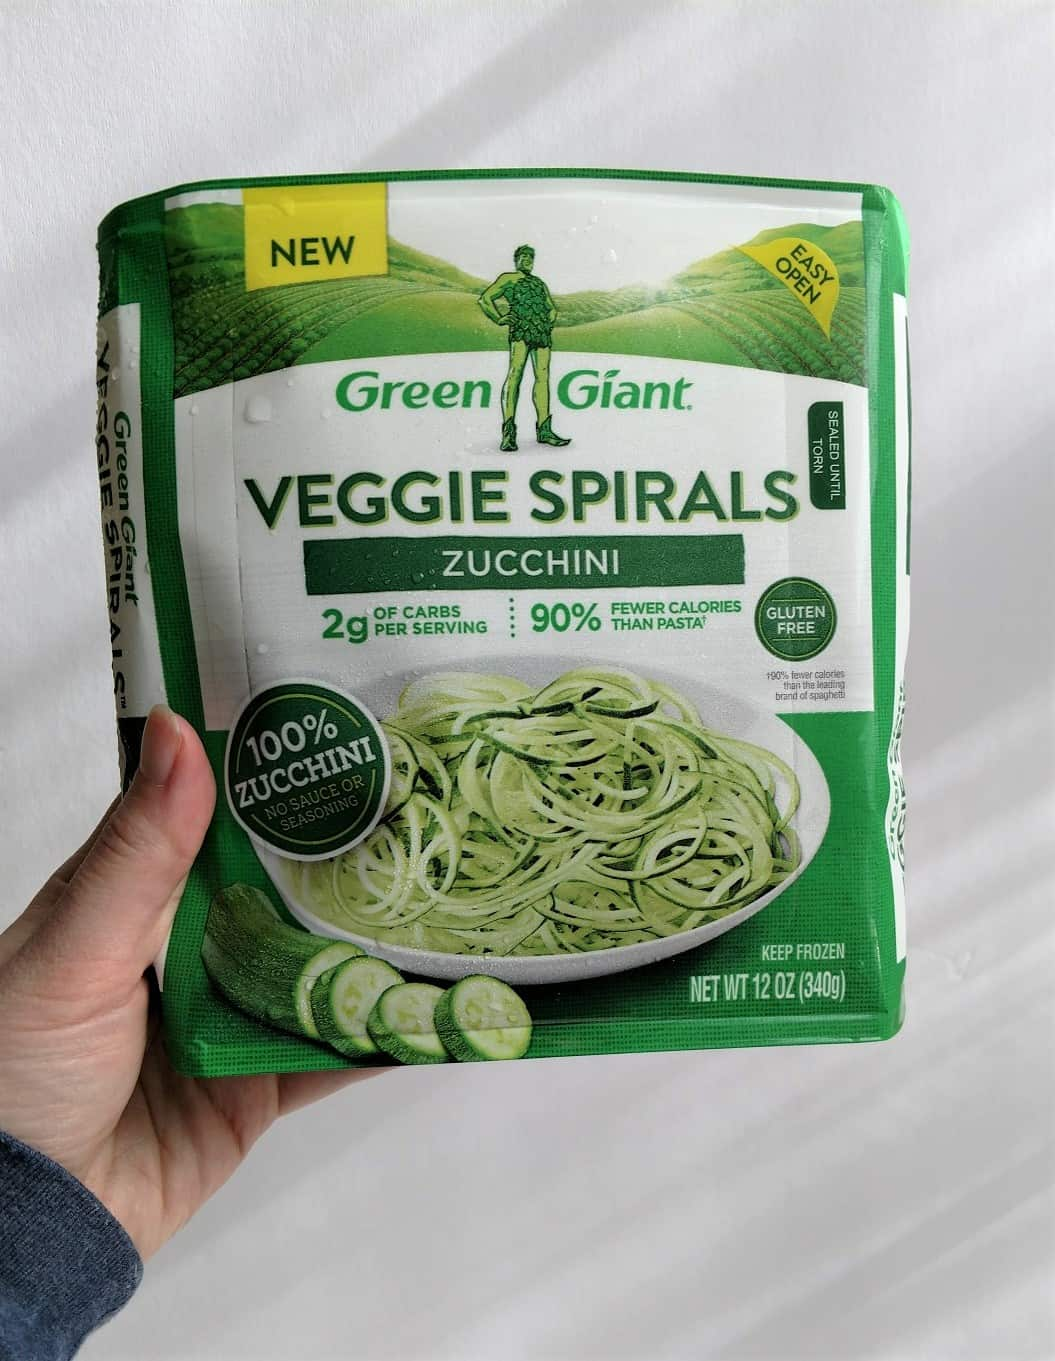 Hand holding a package of Green Giant Veggie Spirals zucchini noodles